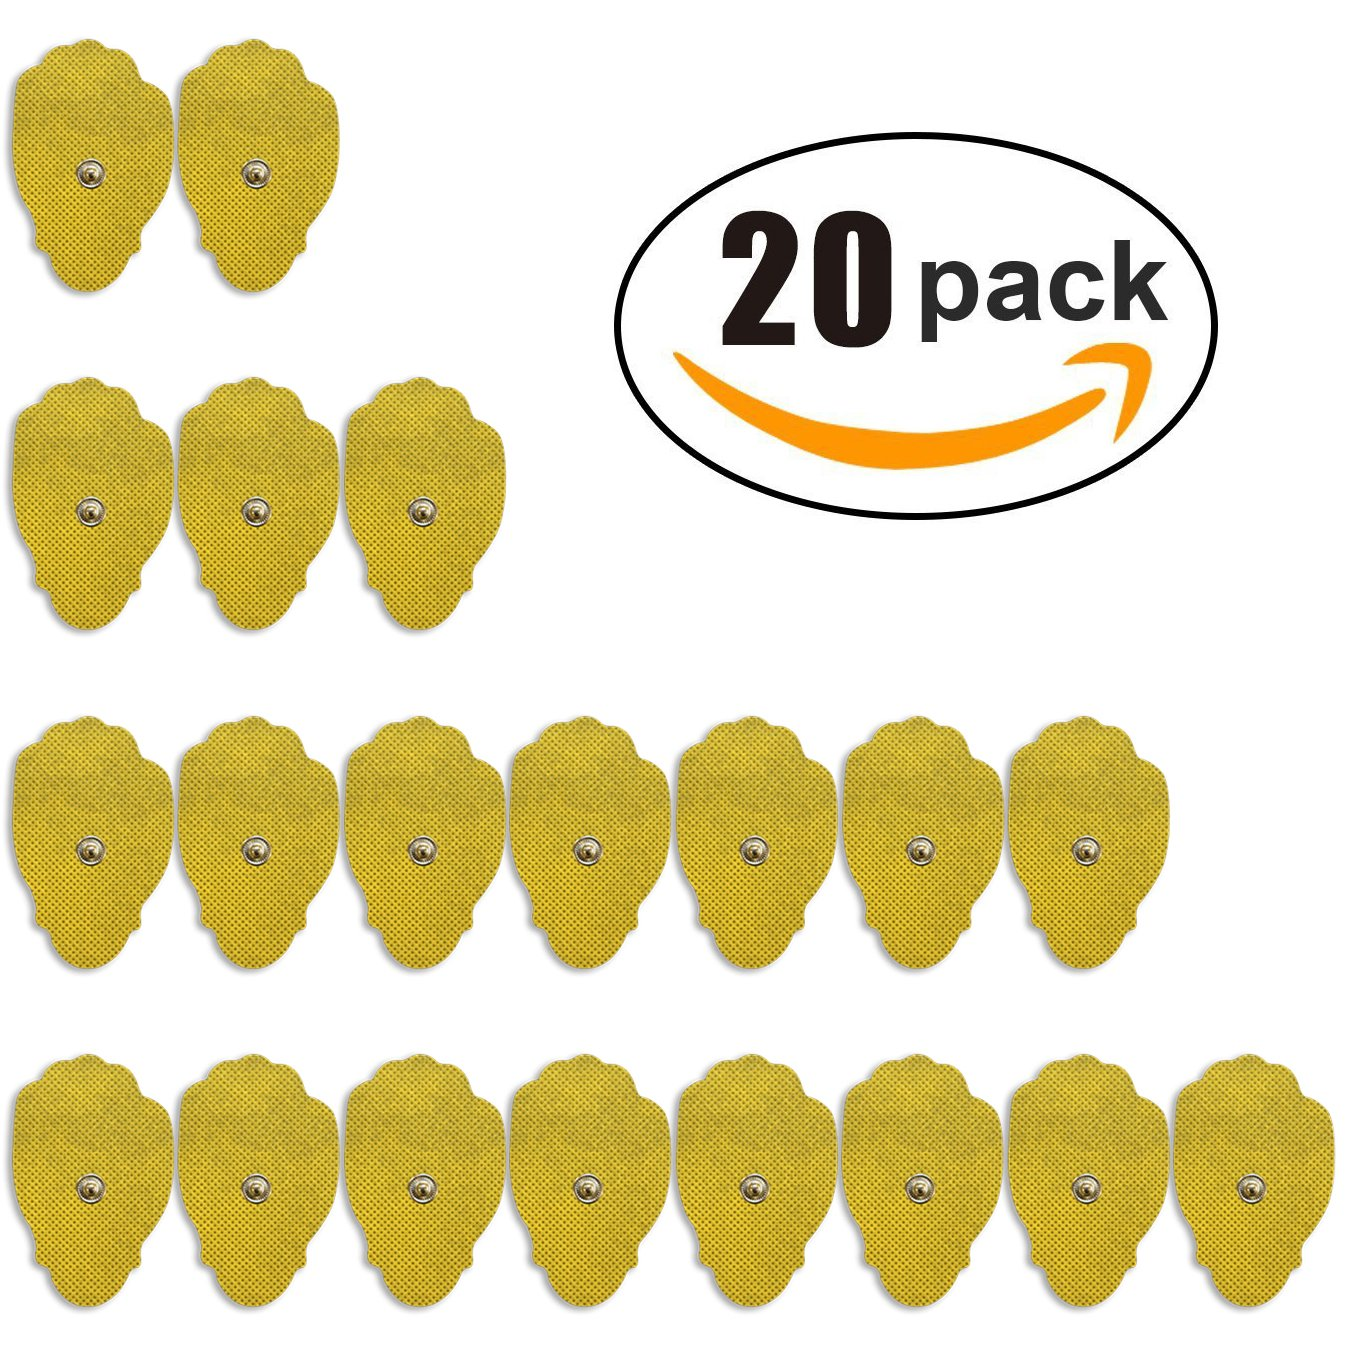 Smart Relief 20-Pack of Large Self-Adhesive Replacement TENS Pads for TENS & EMS Devices - 3'' x 1.8'' Reusable & Universal Snap-on TENS Pads by Smart Relief (Image #1)